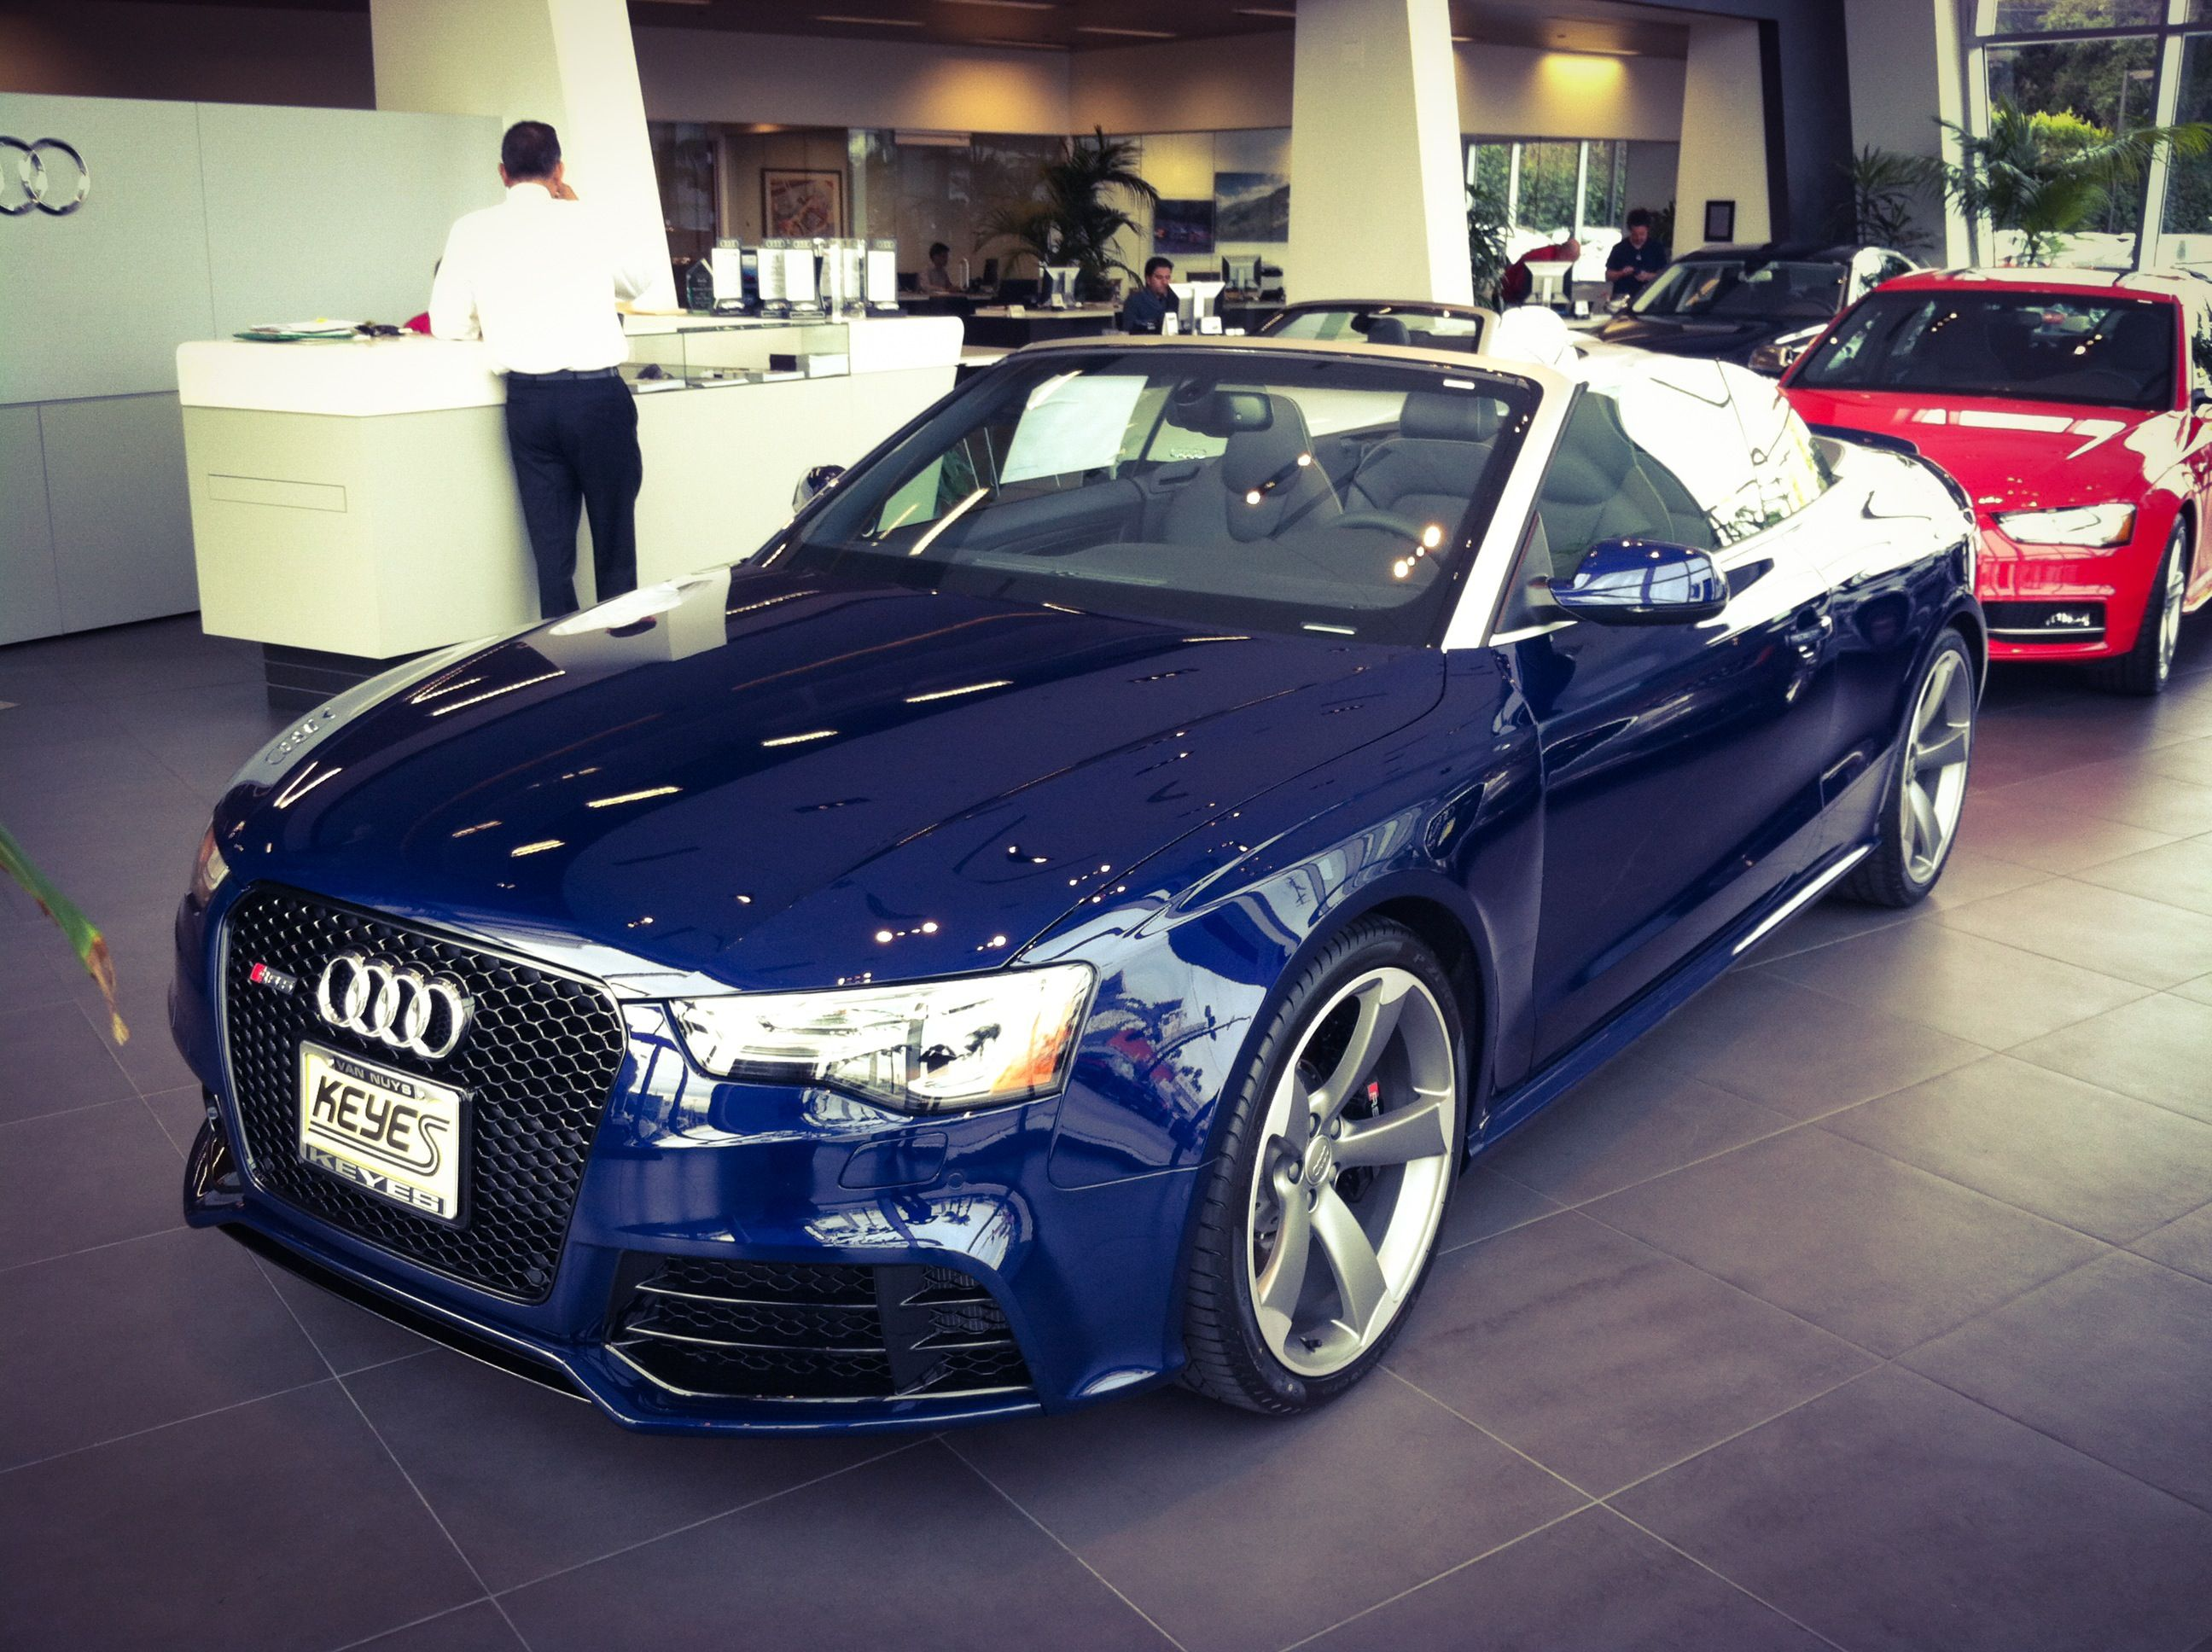 Beau Audi S5 Convertible | 2014 Audi RS5 Cabriolet U2013 Strike Off The Road With Audi  RS5 | Revo | Pinterest | Audi Rs5, Audi S5 And Convertible